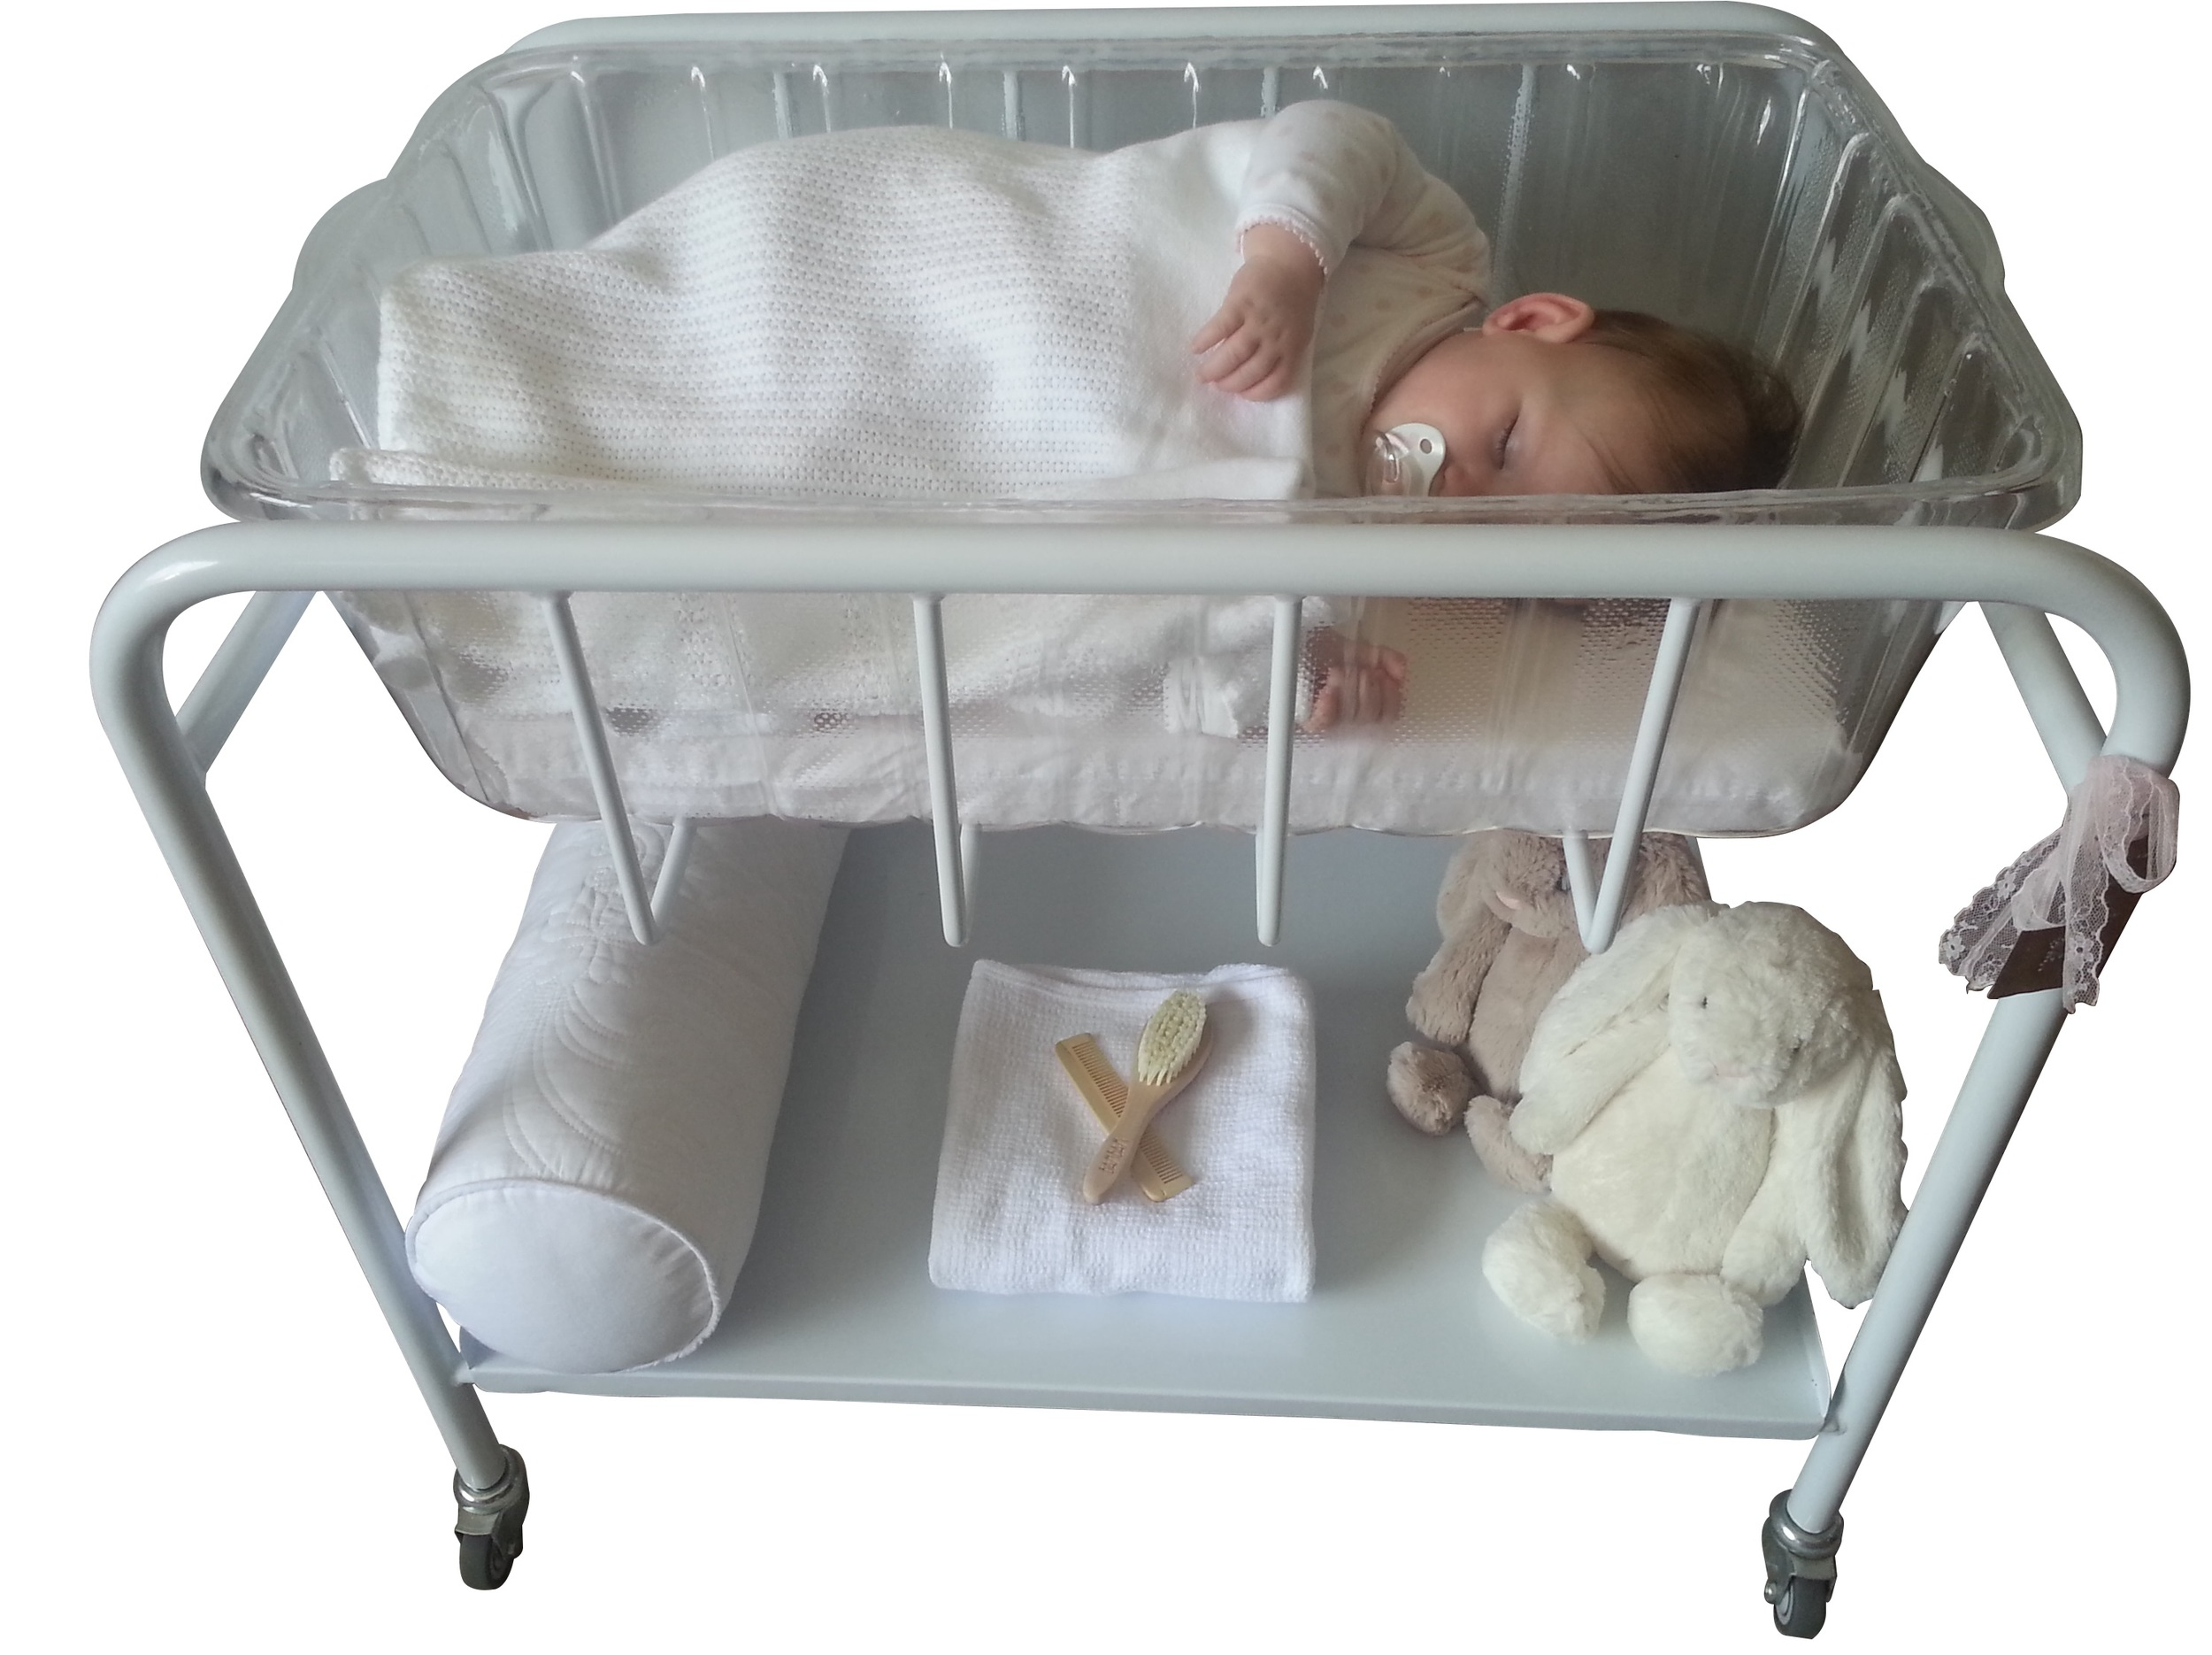 The Petite Cot and Bath